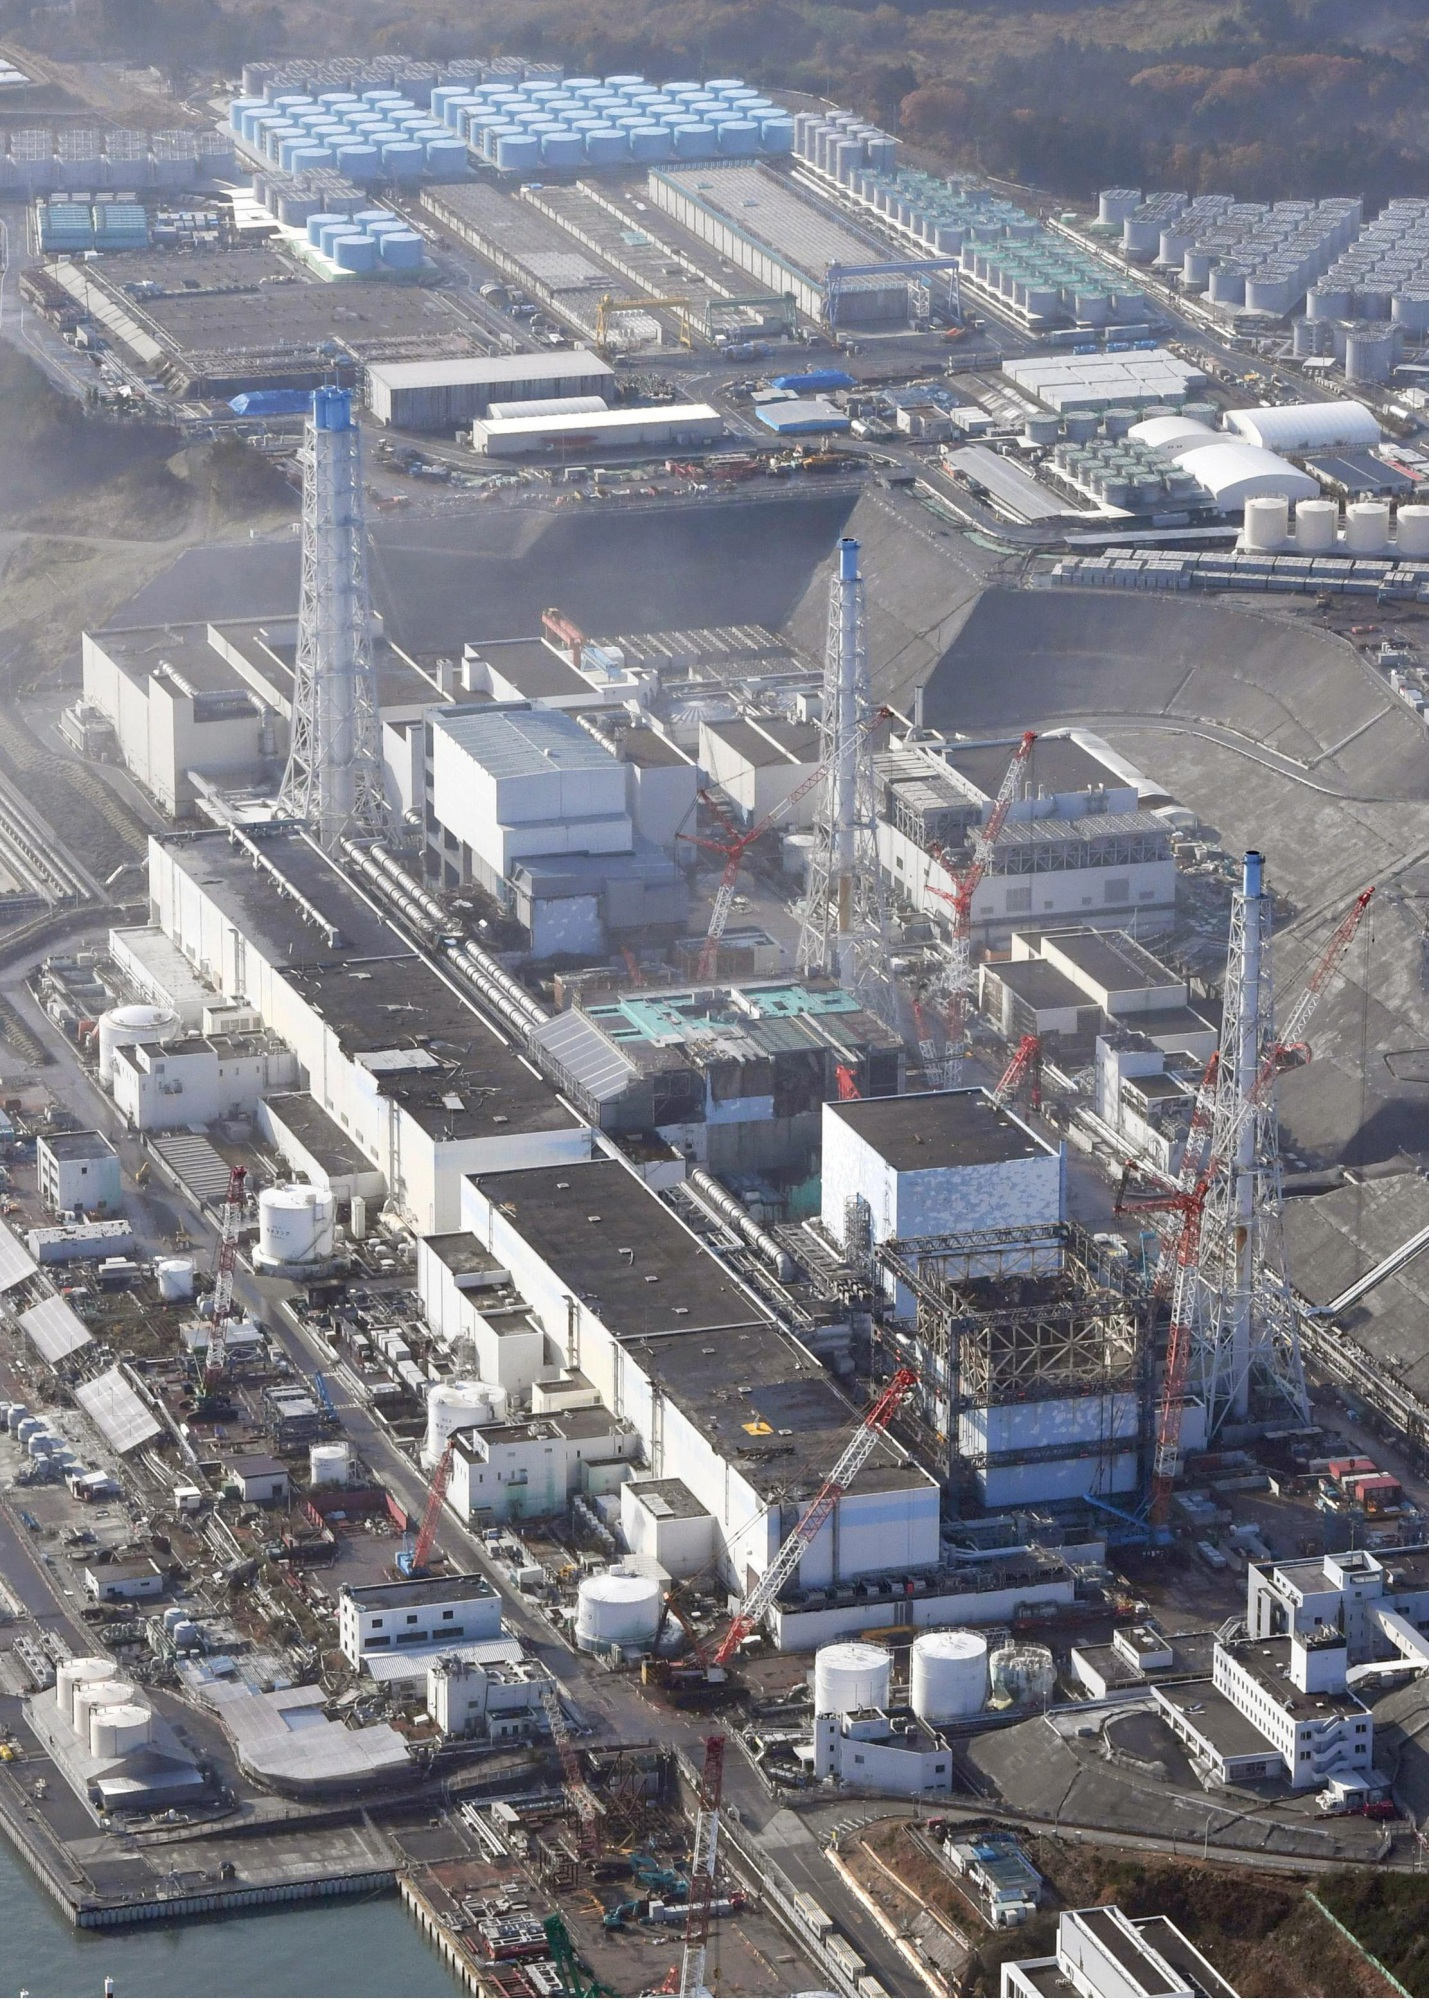 the fukishima disaster essay Running head: fukushima nuclear plant disaster the fukushima nuclear plant disaster abstract this study is an examination of the anomaly that occurred at fukush.